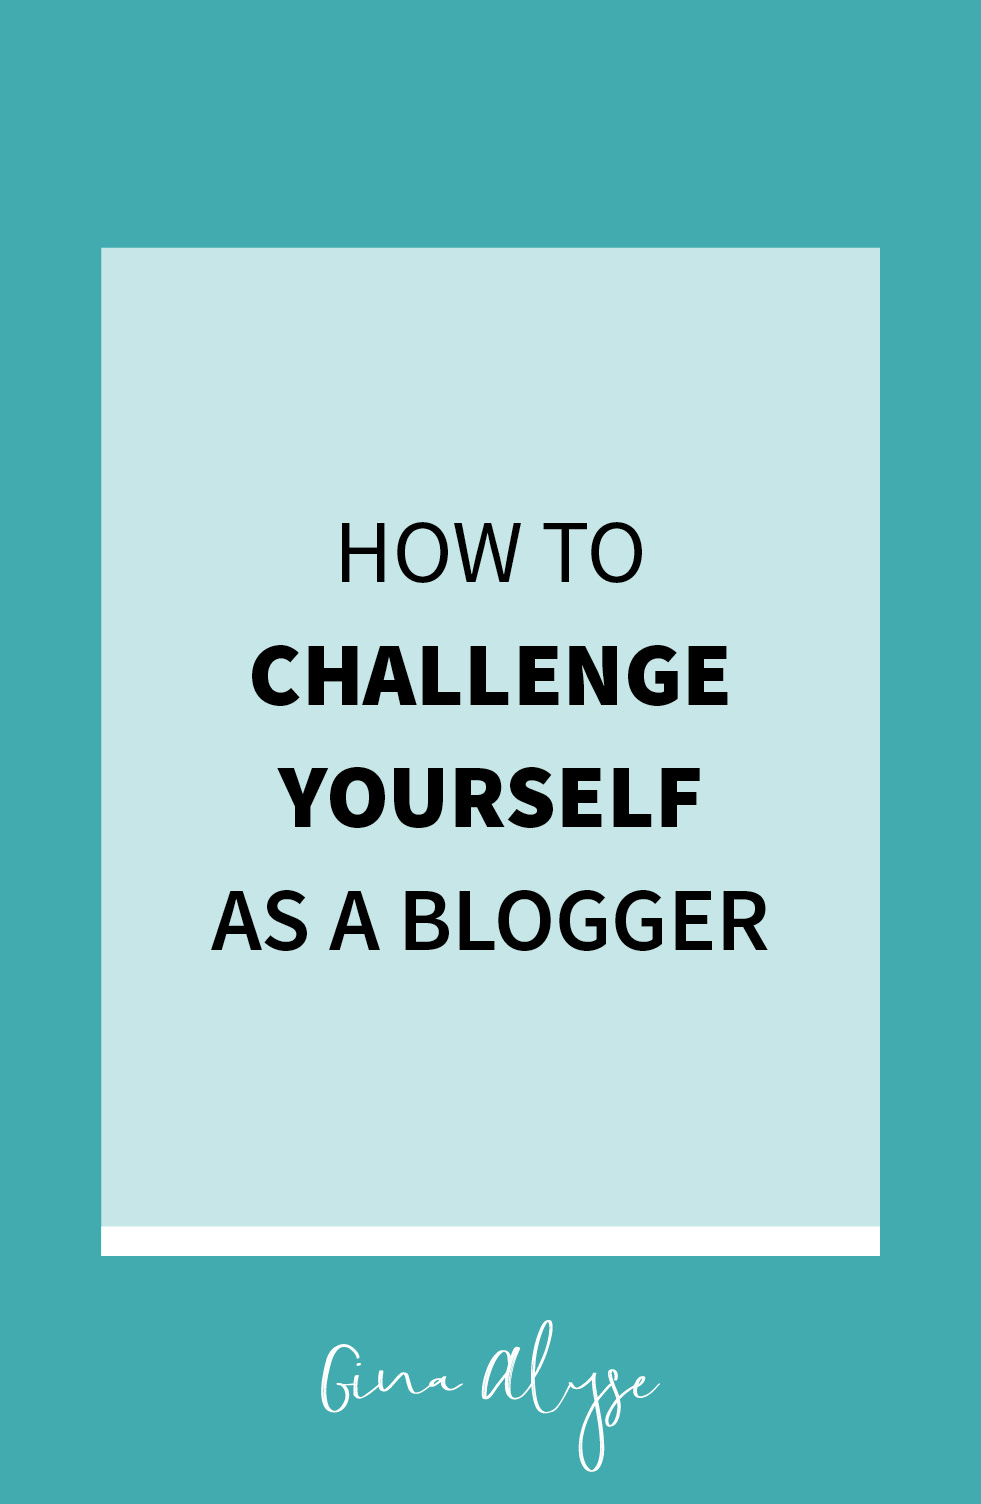 How to Challenge Yourself as a Blogger